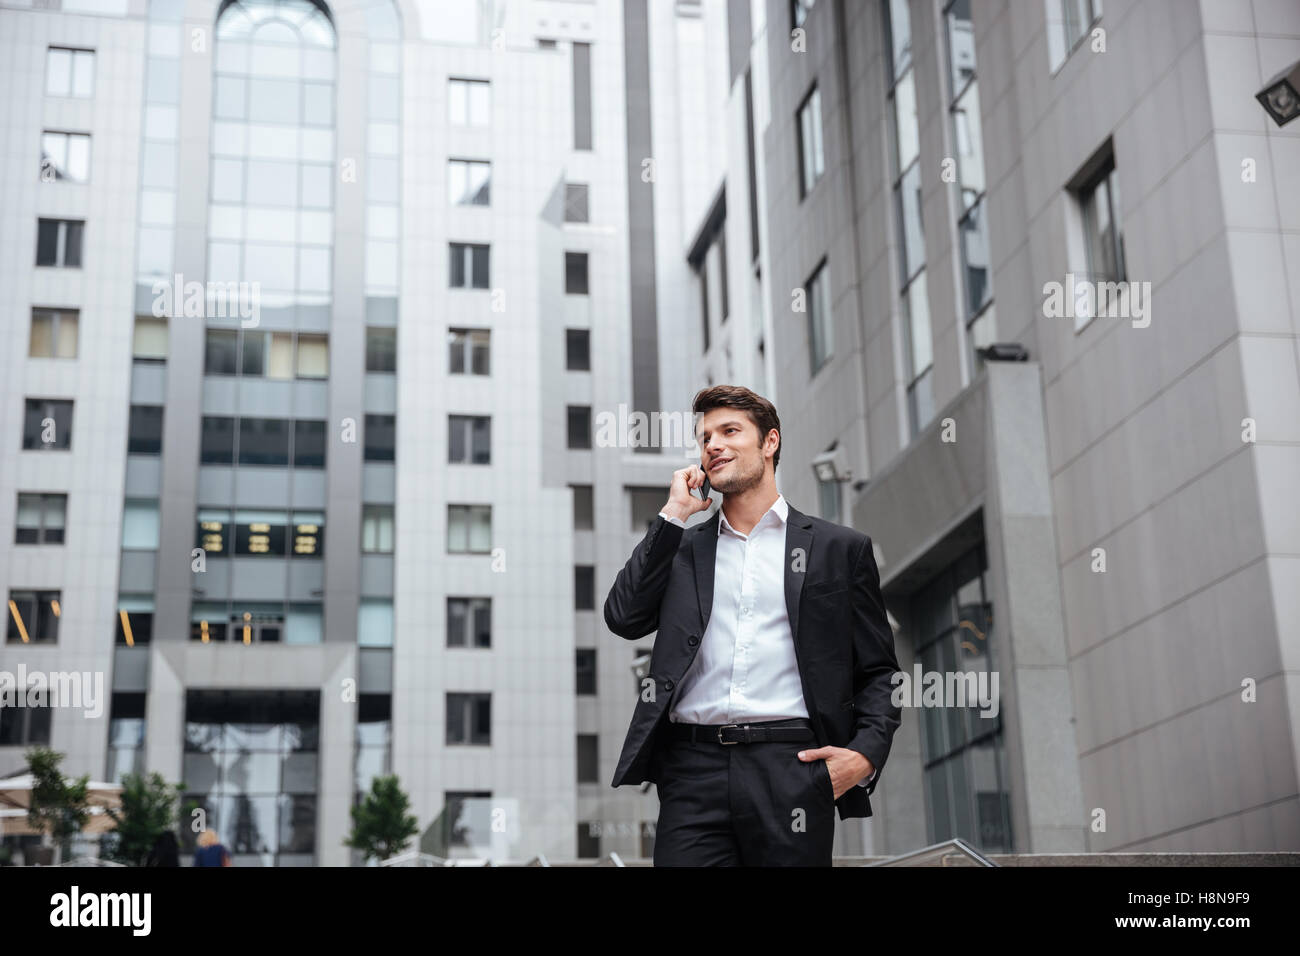 Smiling young businessman talking on mobile phone in the city Stock Photo